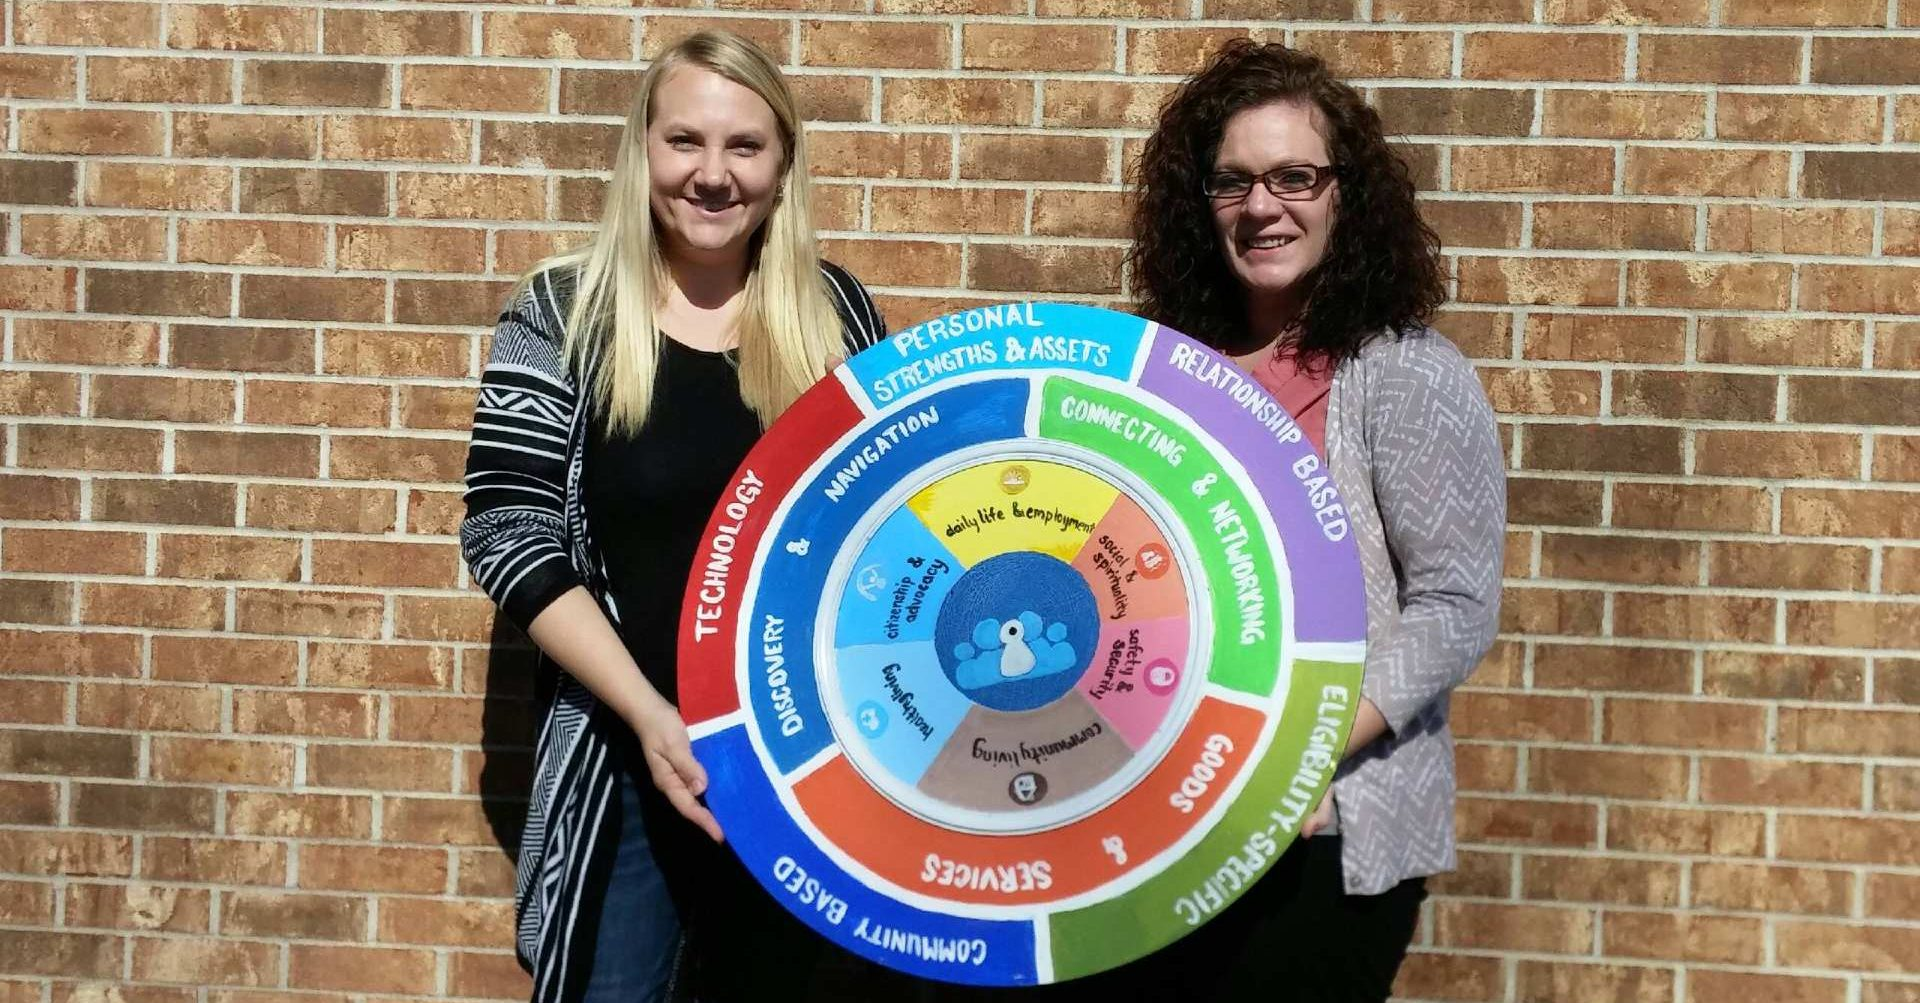 Photo: Two female staff from LOQW present the LifeCourse Circle Artwork they created, which is hanging in their office in Monroe City.